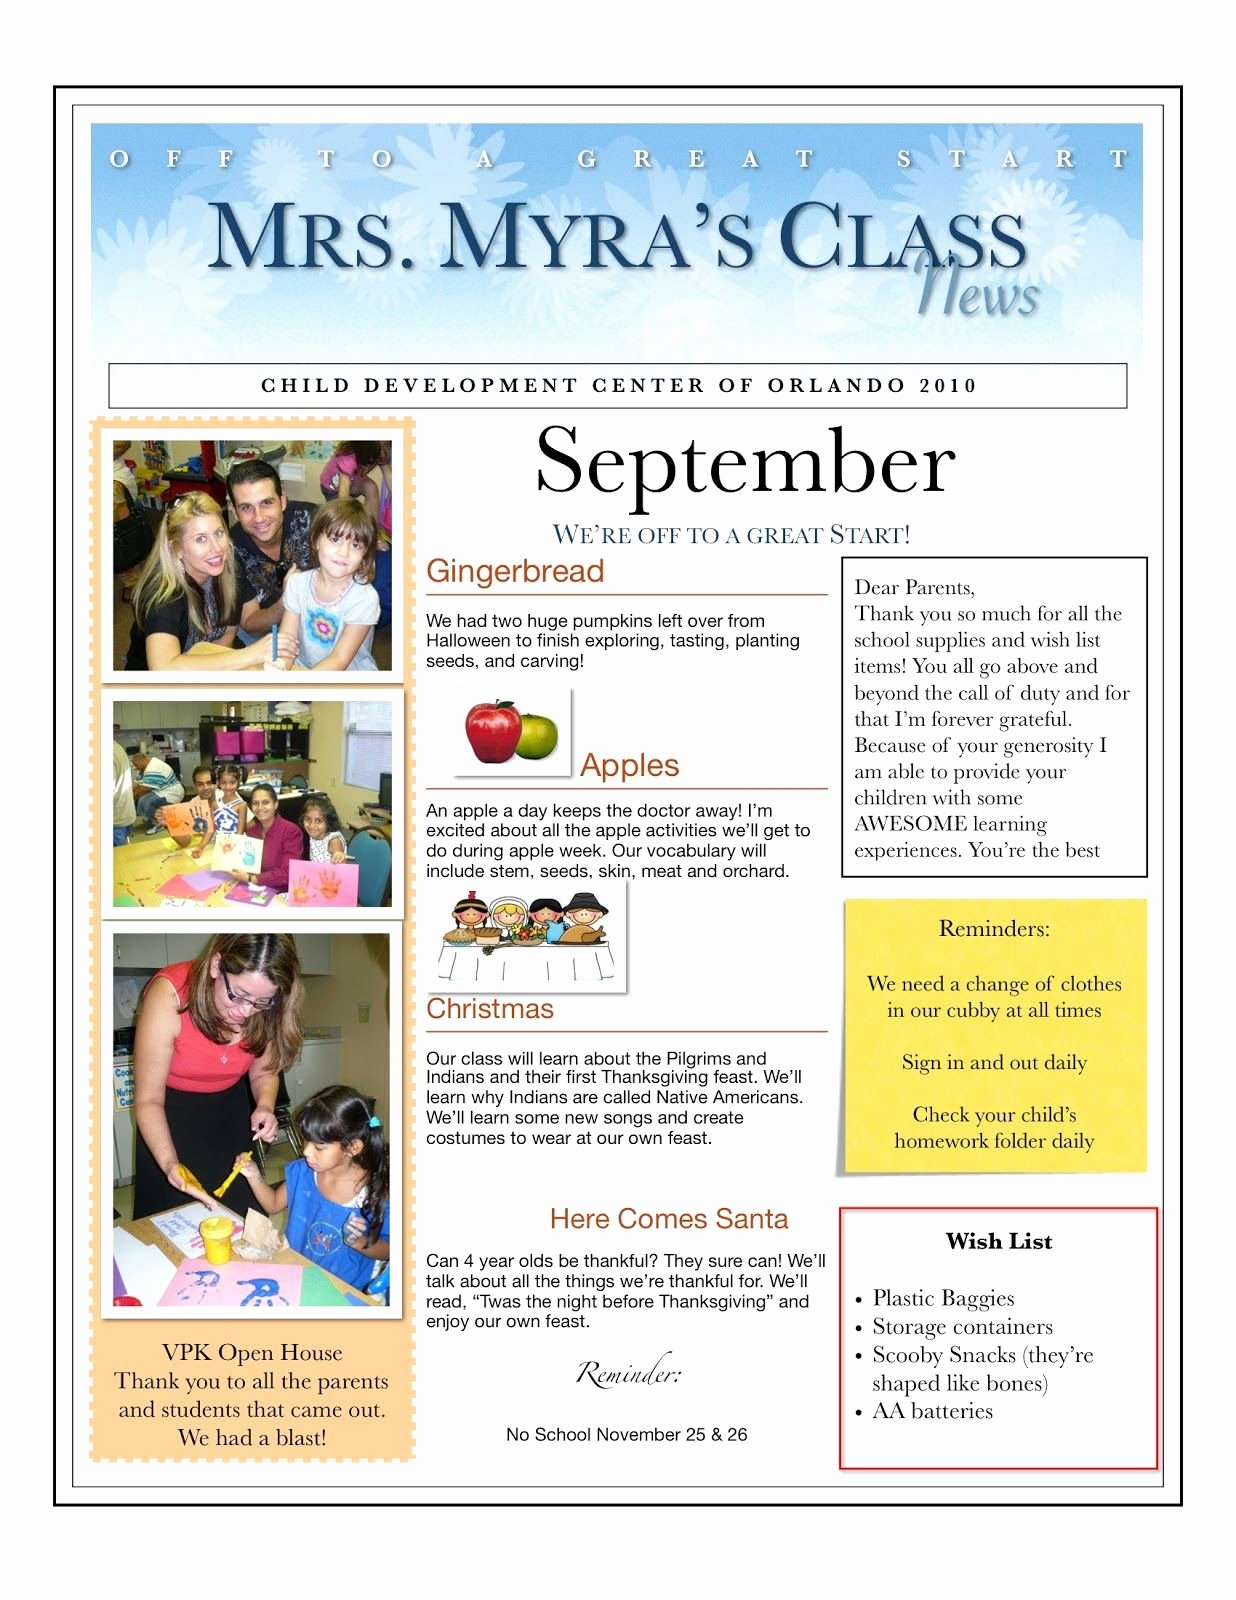 Preschool Newsletter Templates Free Luxury when I Taught Preschool for My Church It Was Mandatory to